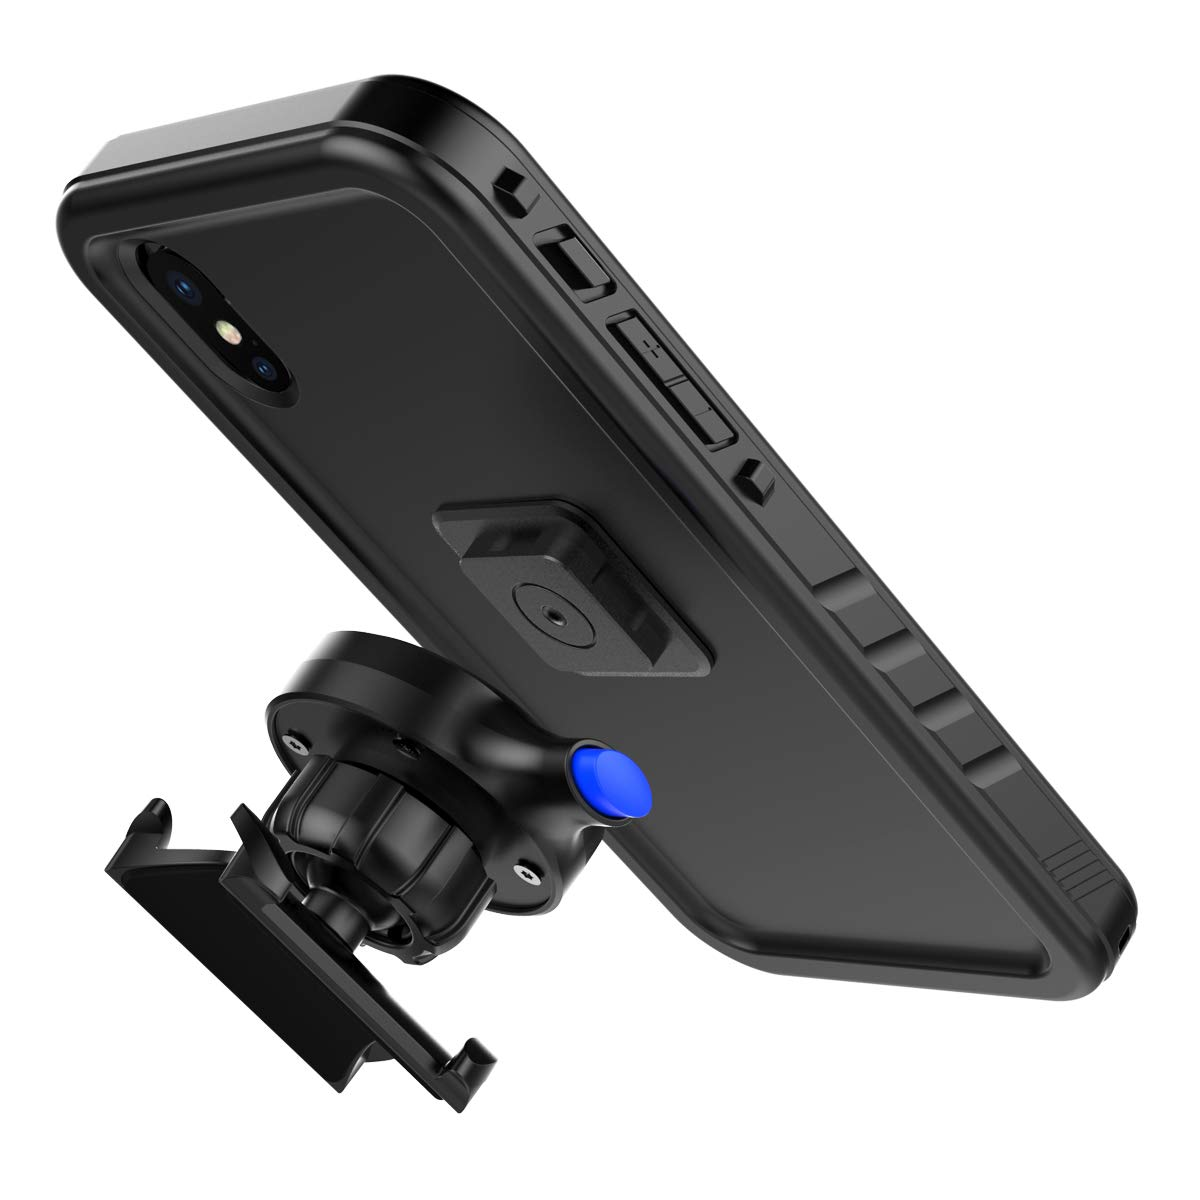 ... Water Resistant Full Body Rugged Protective Cover with Rotating Bicycle Handlebar Mount Phone Holder for iPhone XS Max 2018 6.5